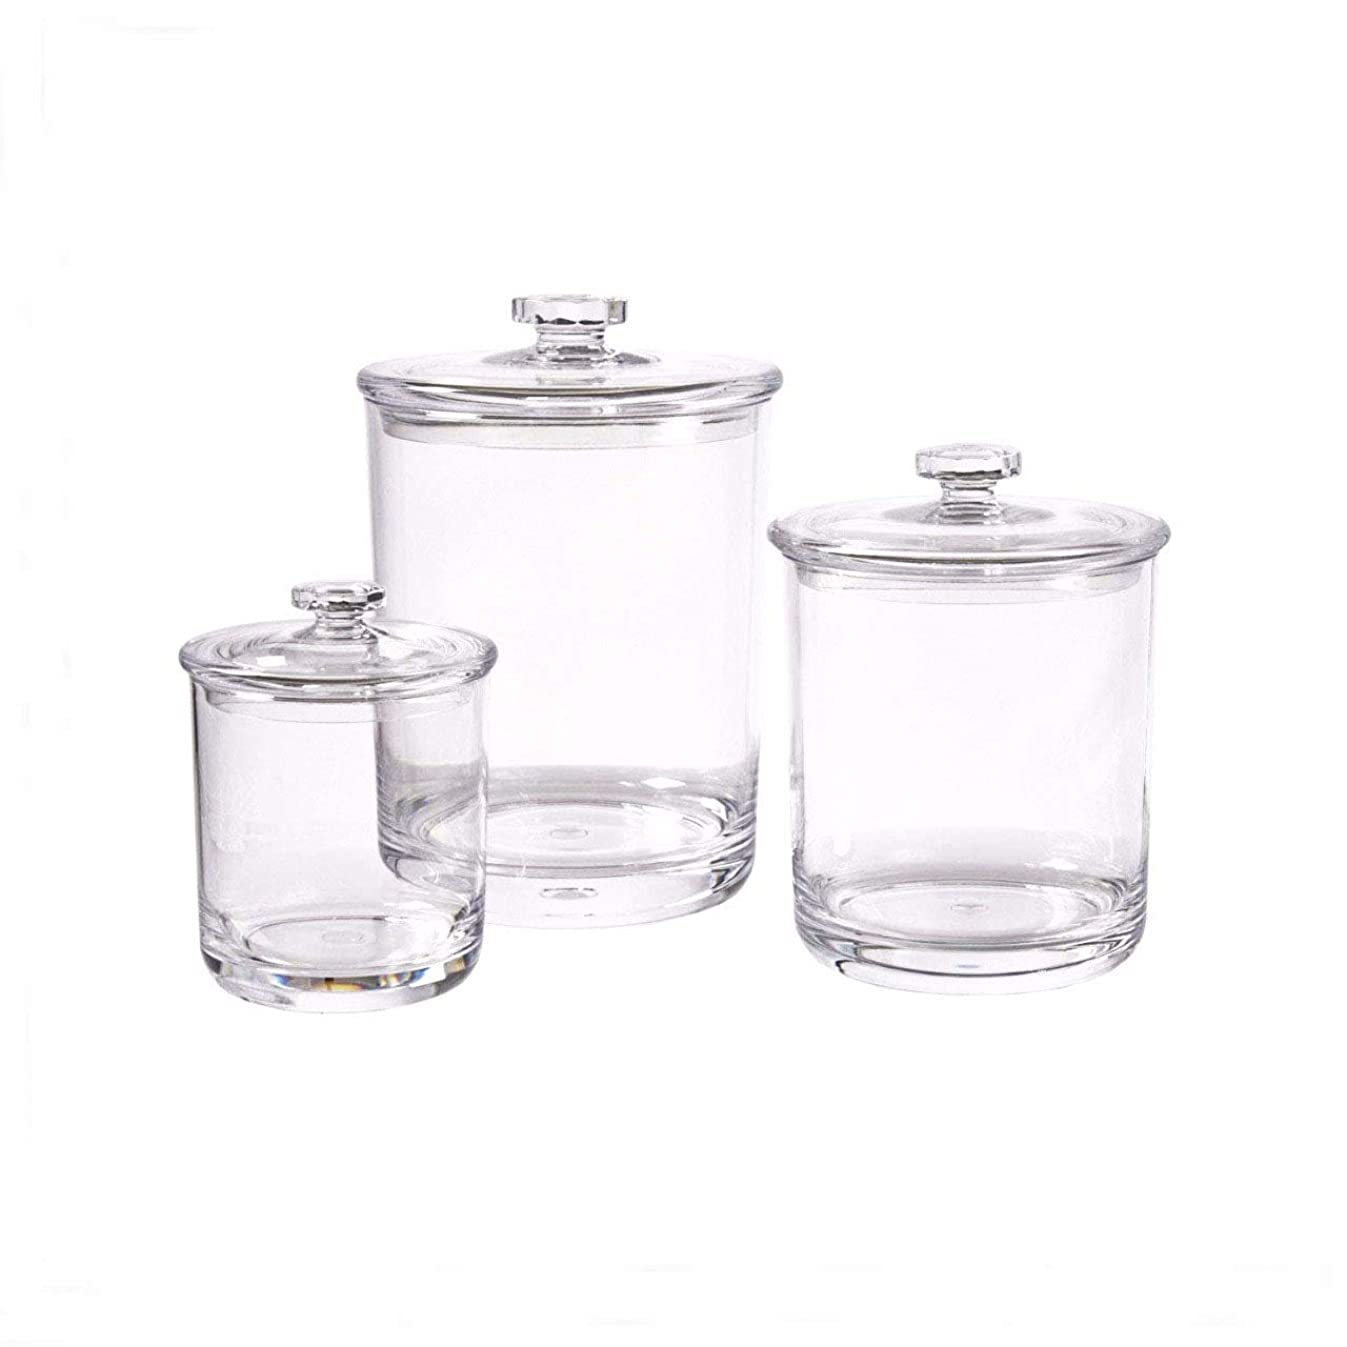 Easyway Set of 3 Apothecary Multifunctional Acrylic Jars – Plastic Jars – Great Home Decor Pieces – Apothecary Jars Large – Apothecary Jars Bathroom – Bath Bomb Holder